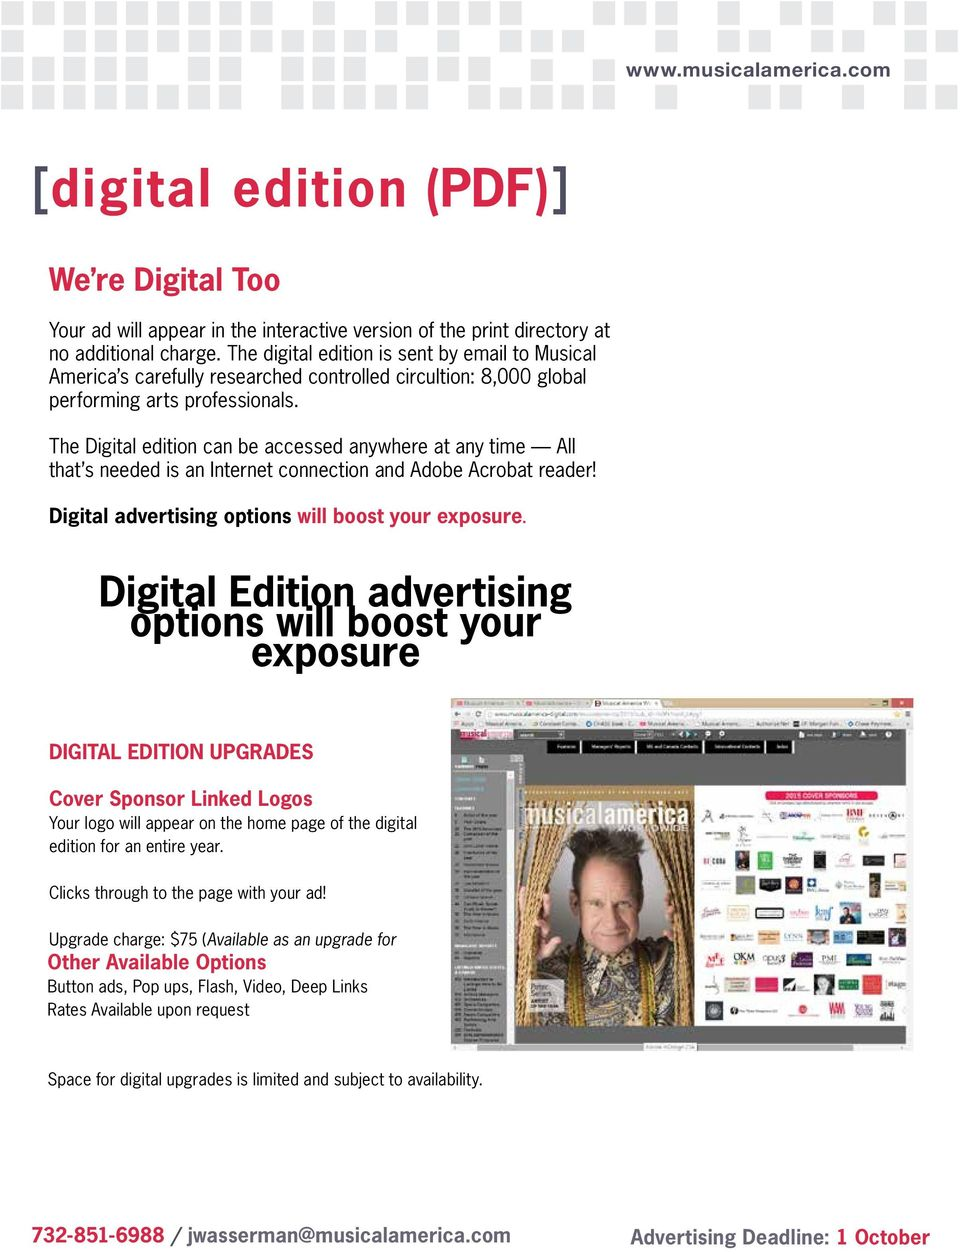 The Digital edition can be accessed anywhere at any time All that s needed is an Internet connection and Adobe Acrobat reader! Digital advertising options will boost your exposure.